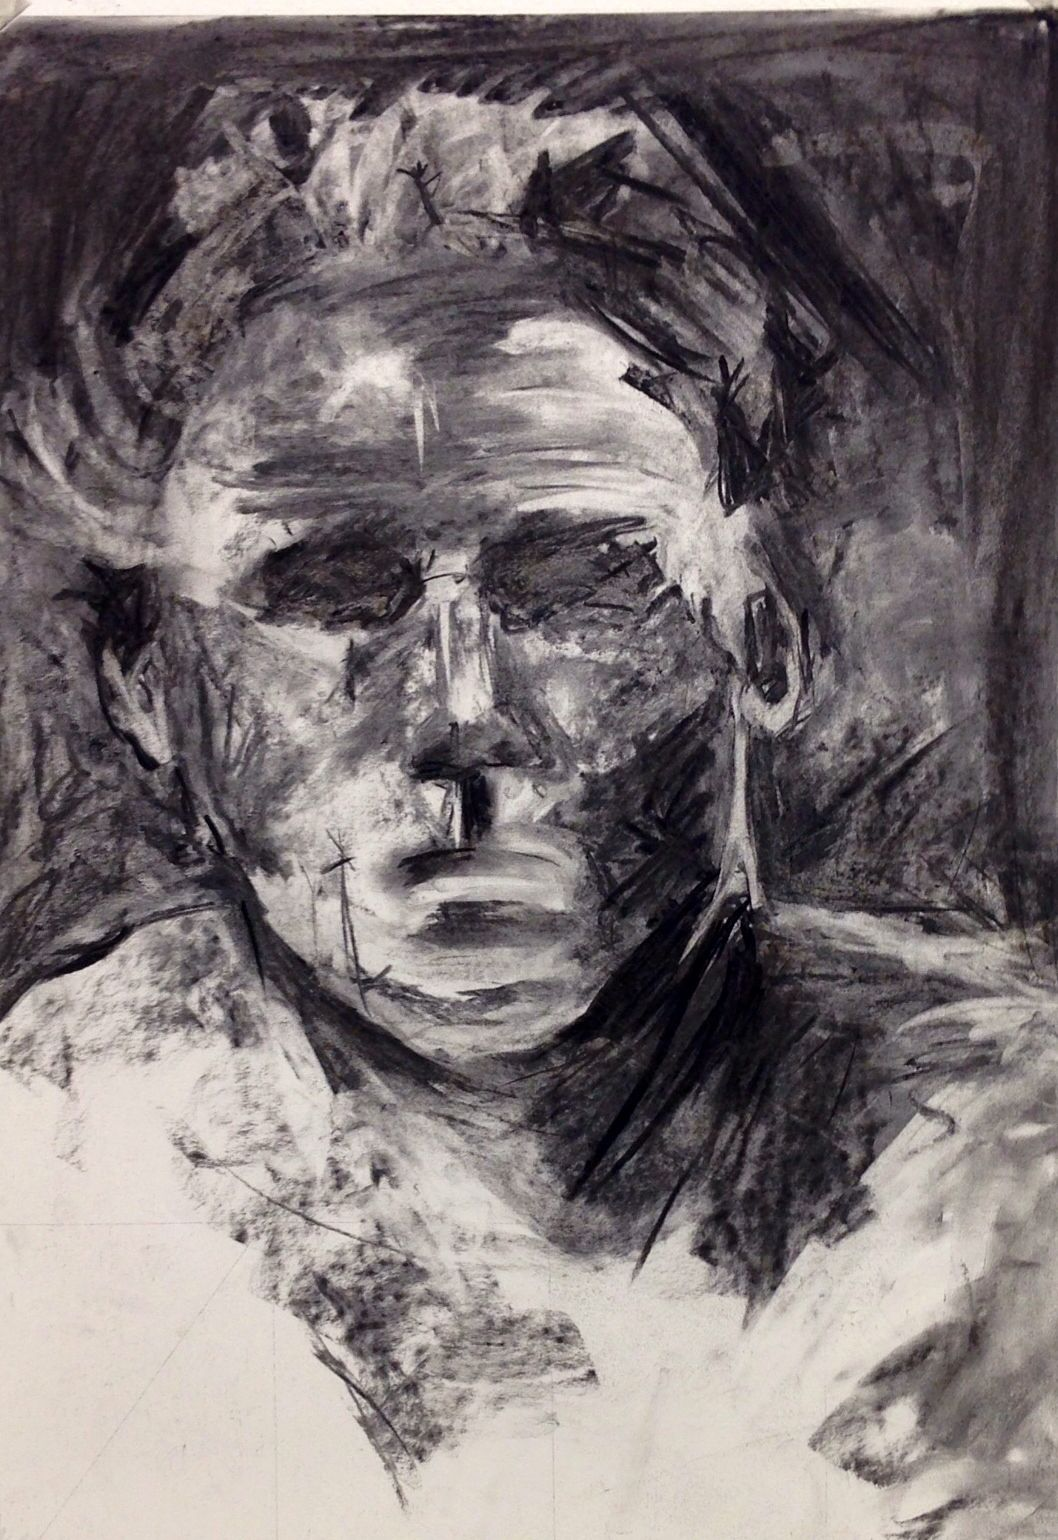 Charcoal tonal drawing